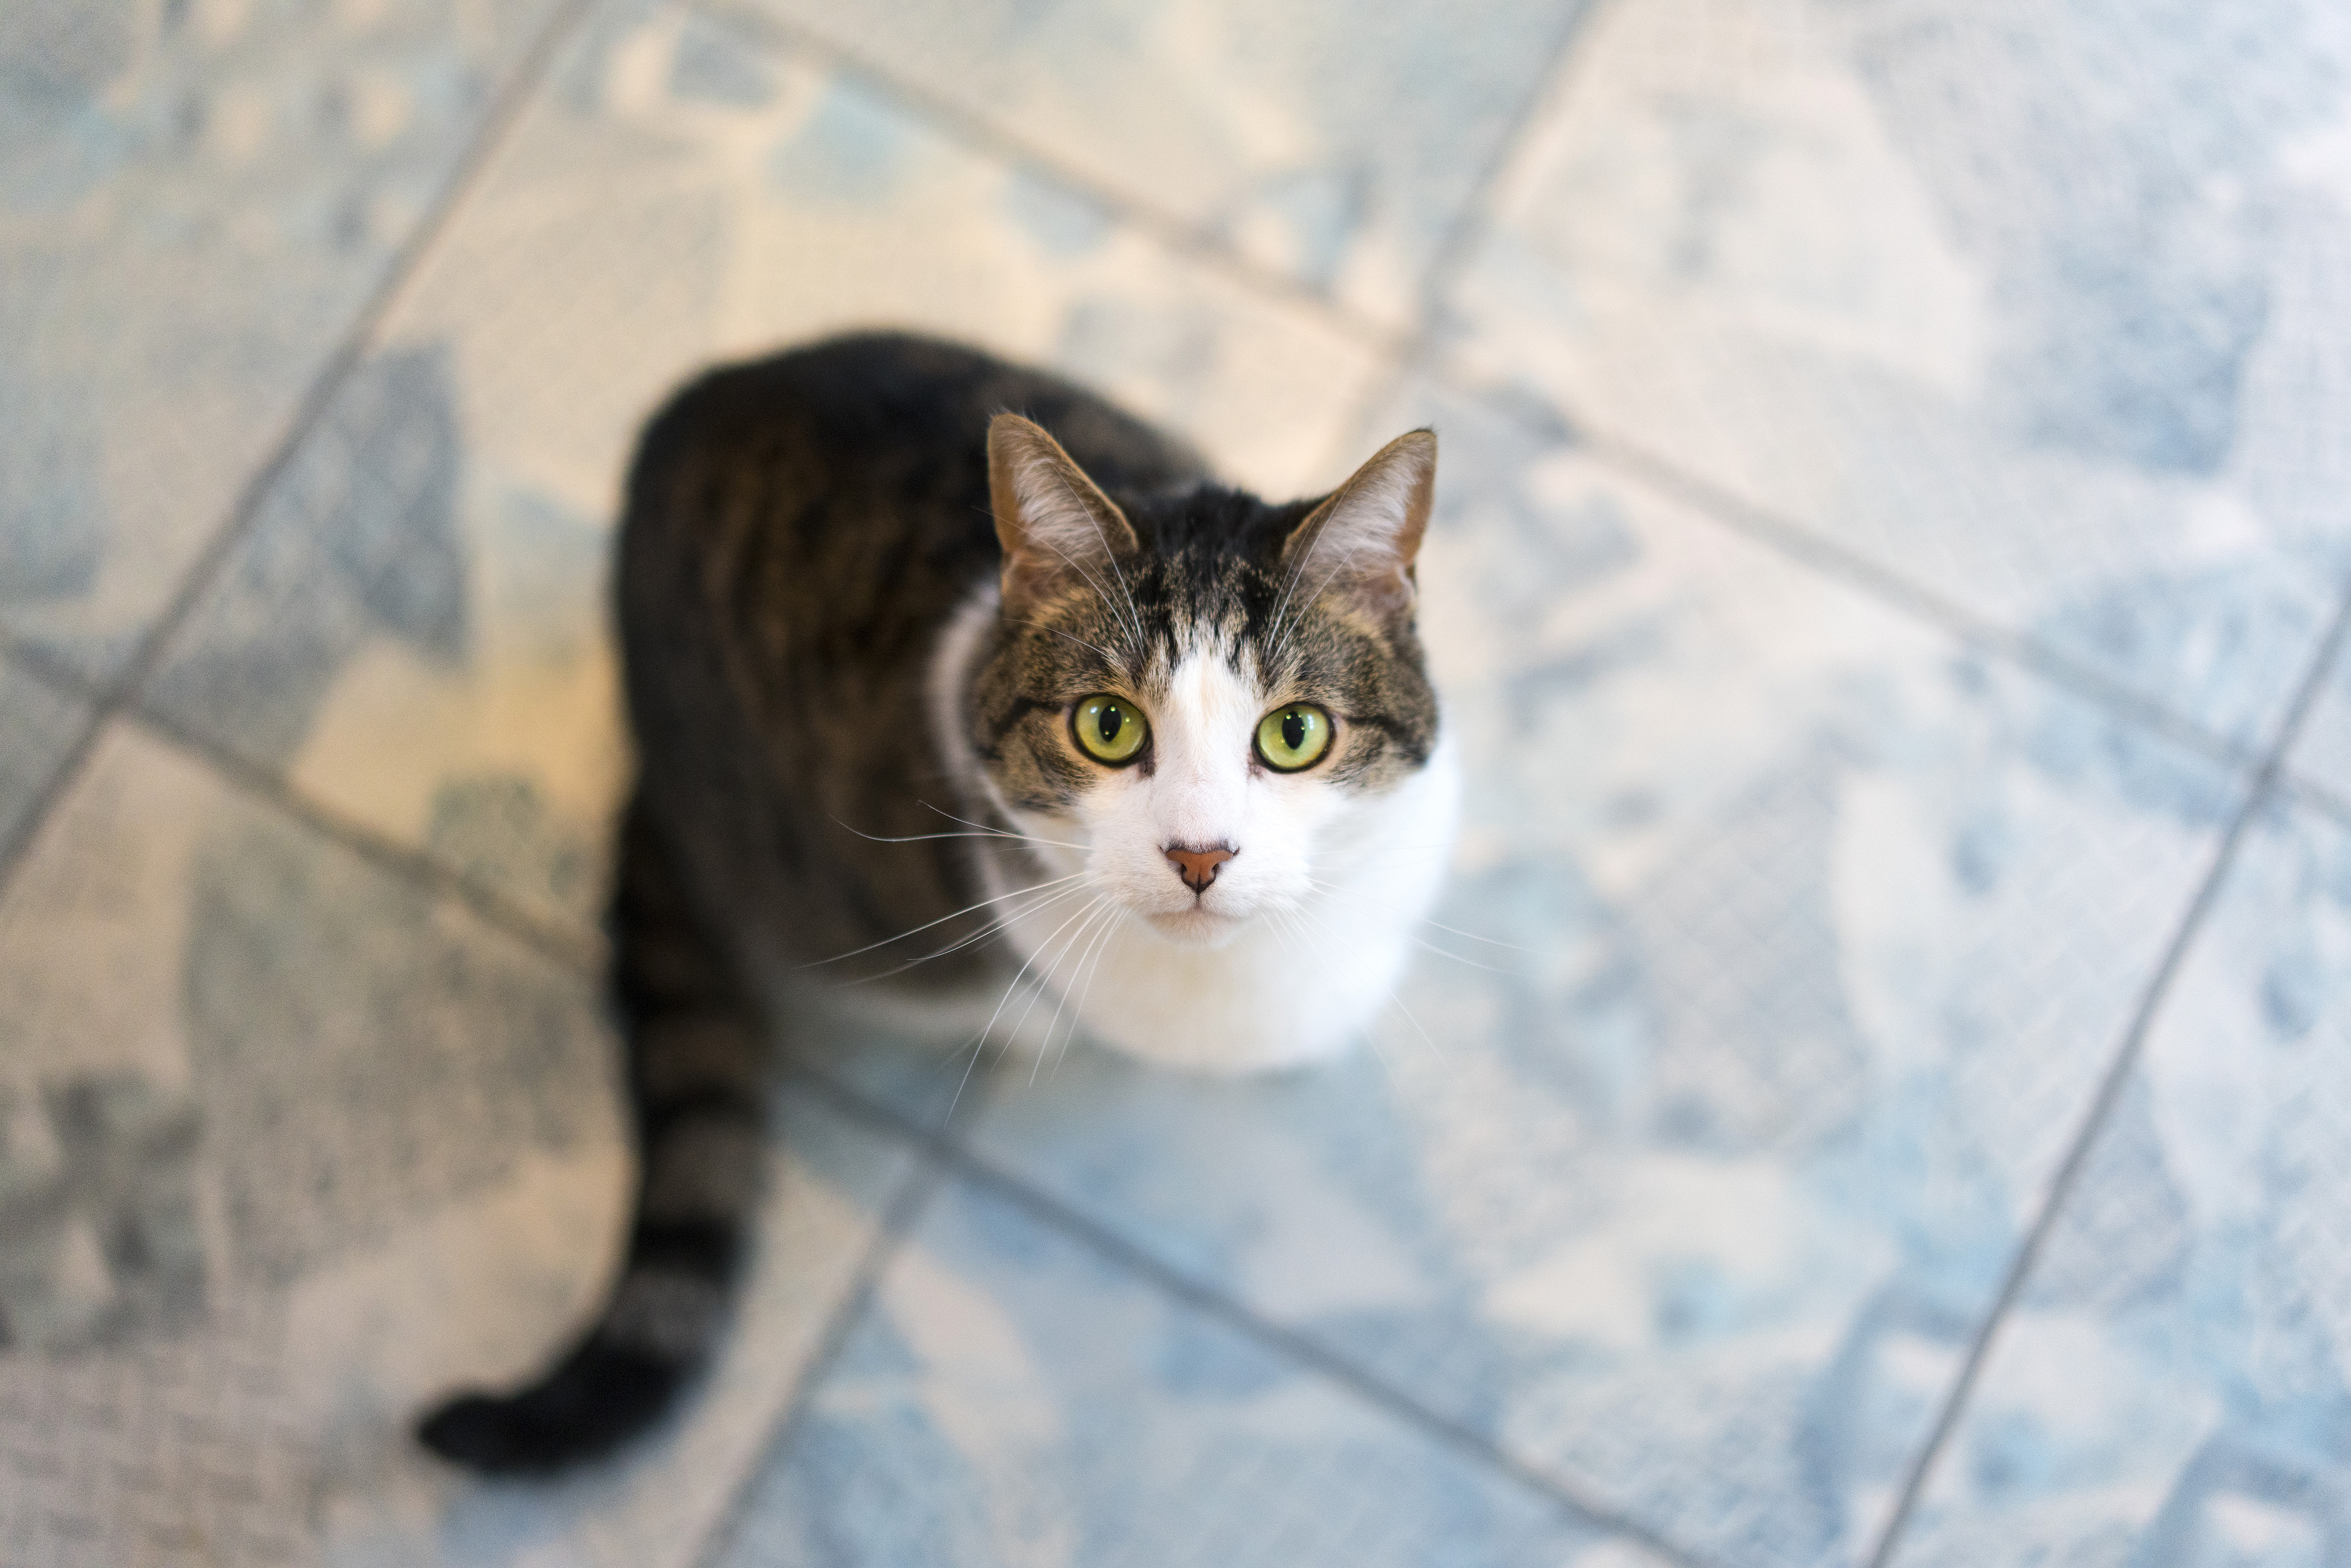 Small Kitty looking up image - Free stock photo - Public